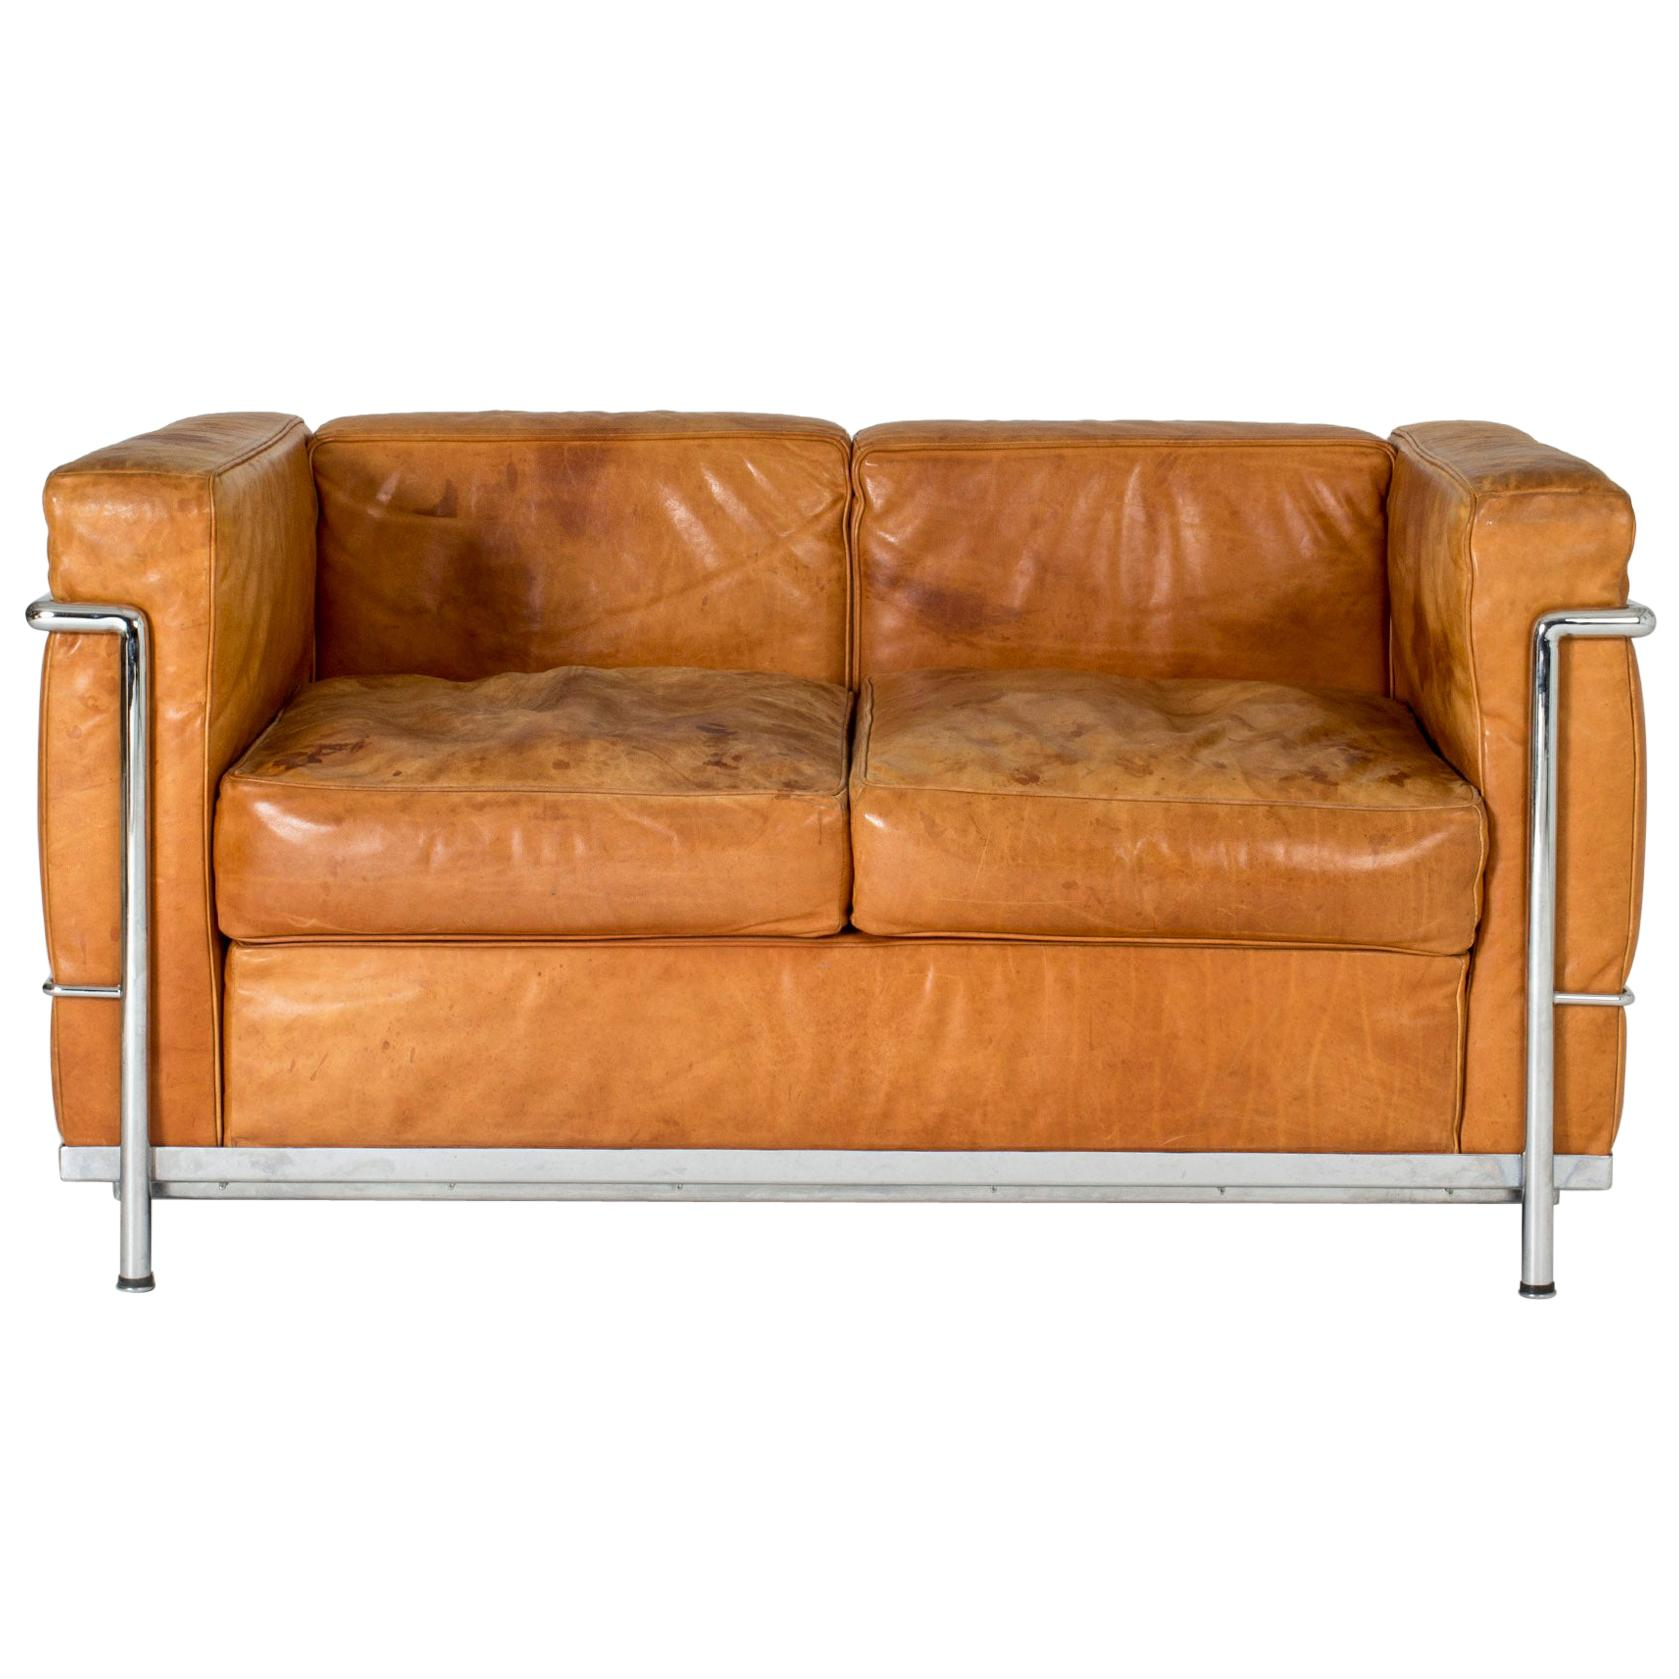 Courvoisier Sessel Le Corbusier Furniture Chairs Sofas Tables More 77 For Sale